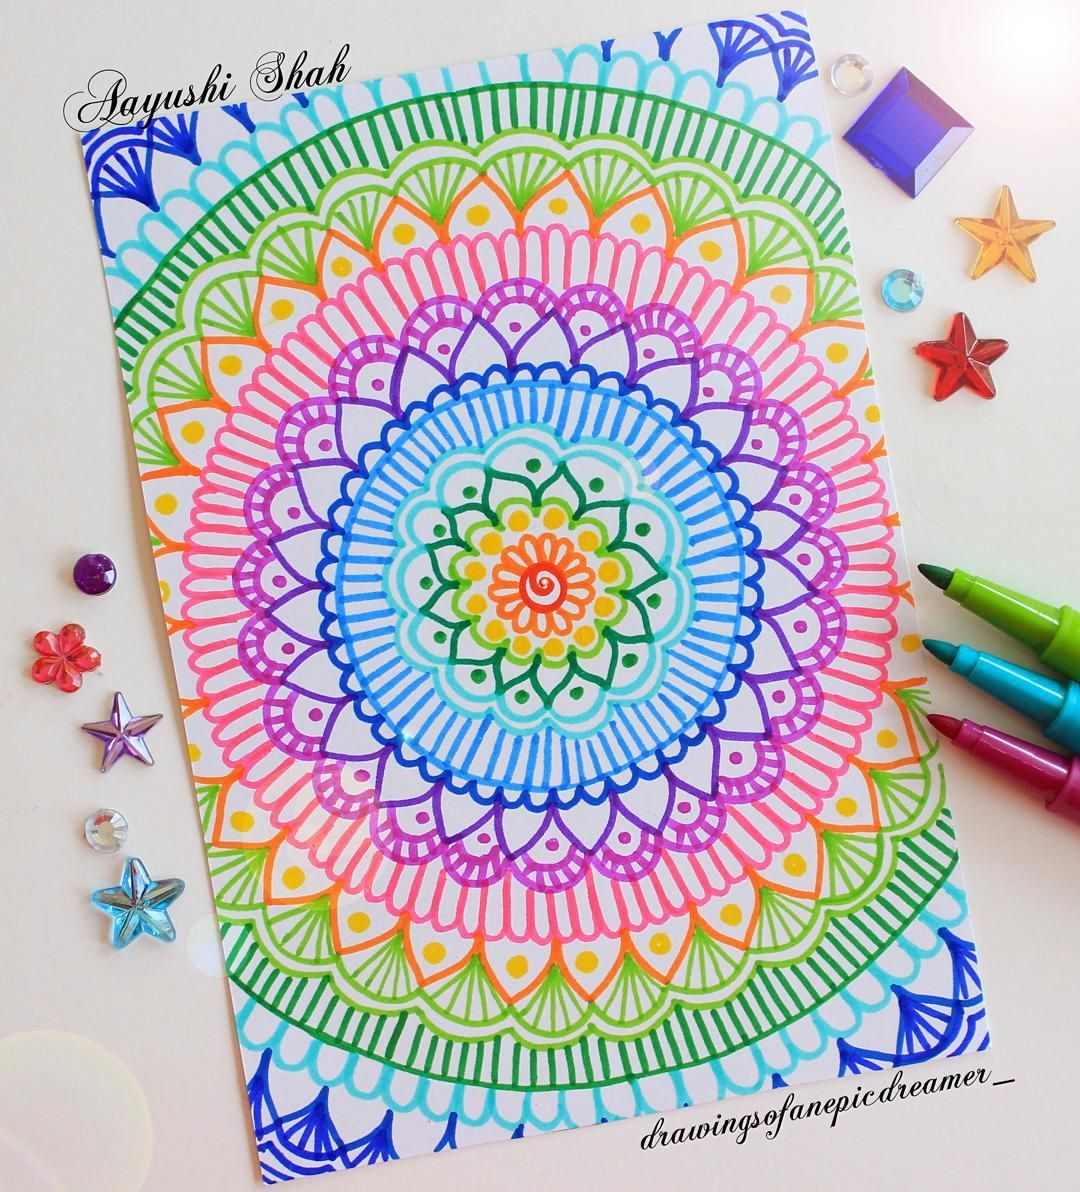 Aayushi On Instagram New Obsession Felt Tip Markers Just Wanted To Remind You That You Are Wonderful And Amazi Marker Art Mandala Drawing Mandala Doodle